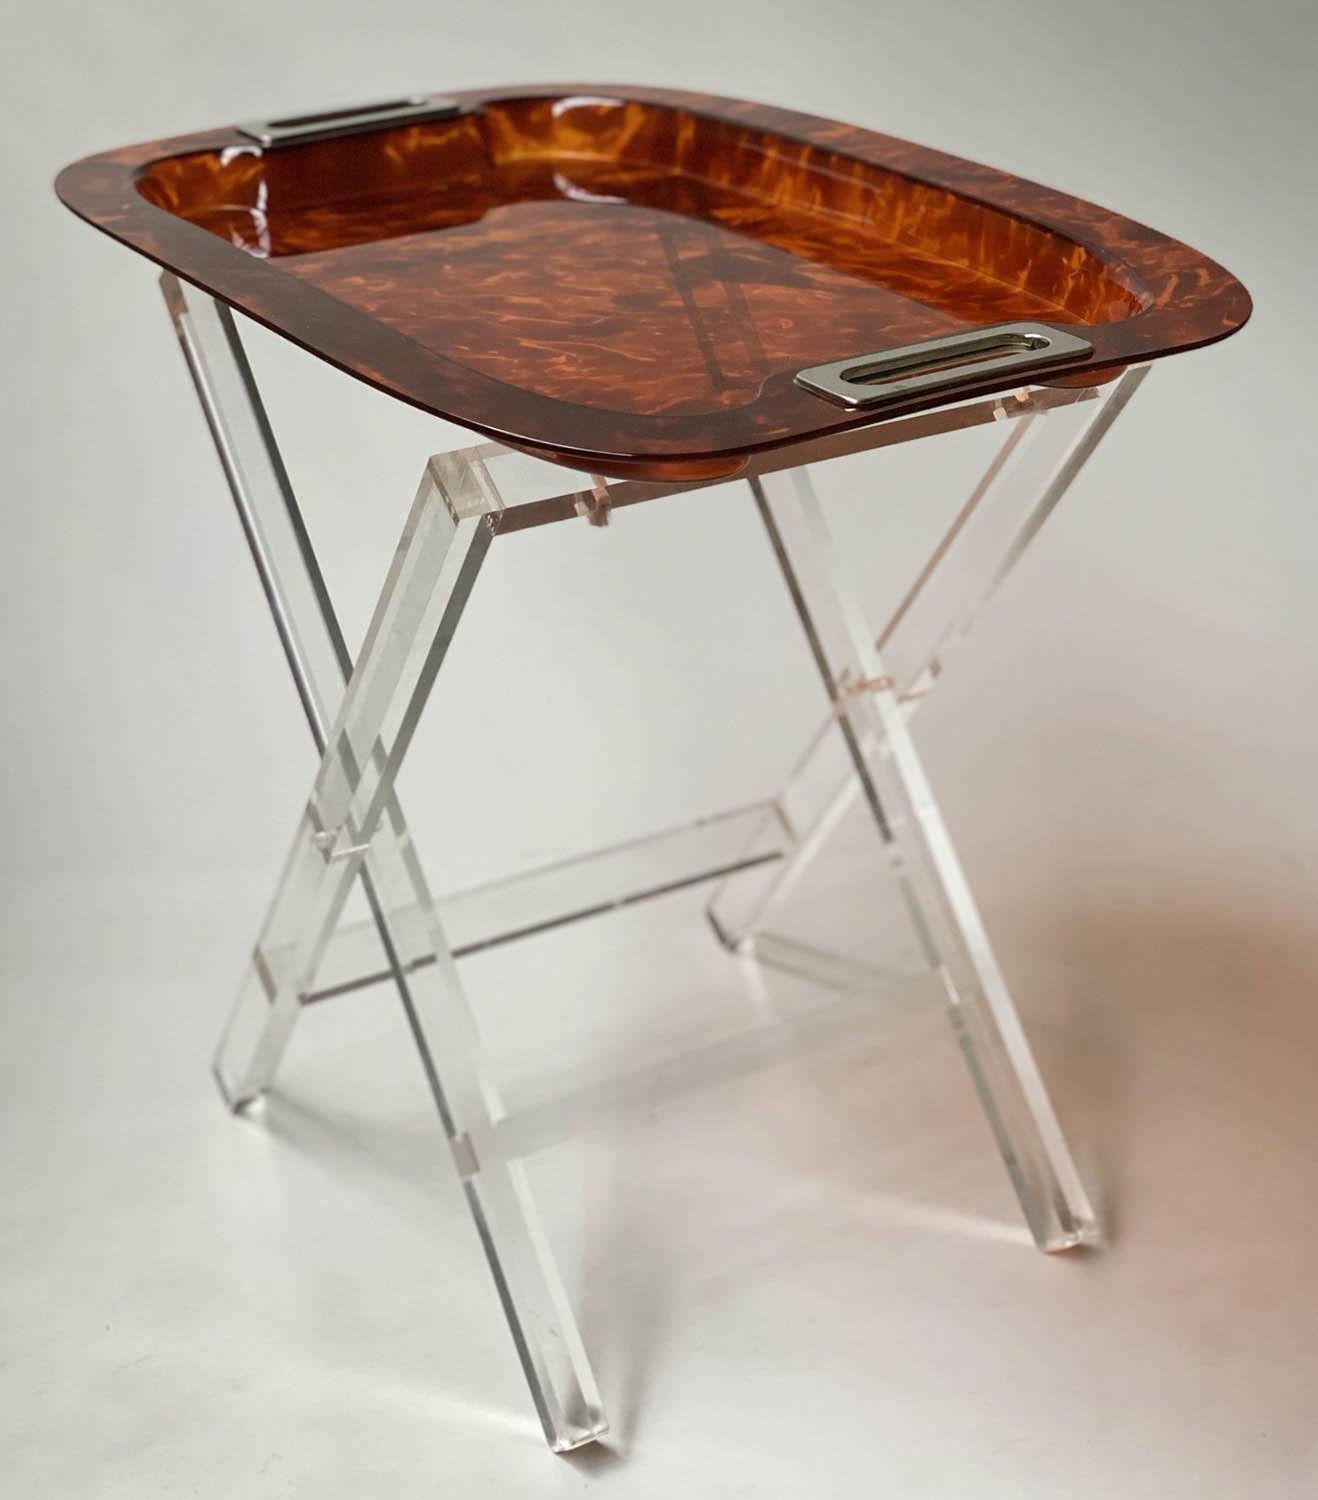 TRAY ON STAND, rectangular faux tortoiseshell with silvered metal handles on folding lucite stand, - Image 5 of 8